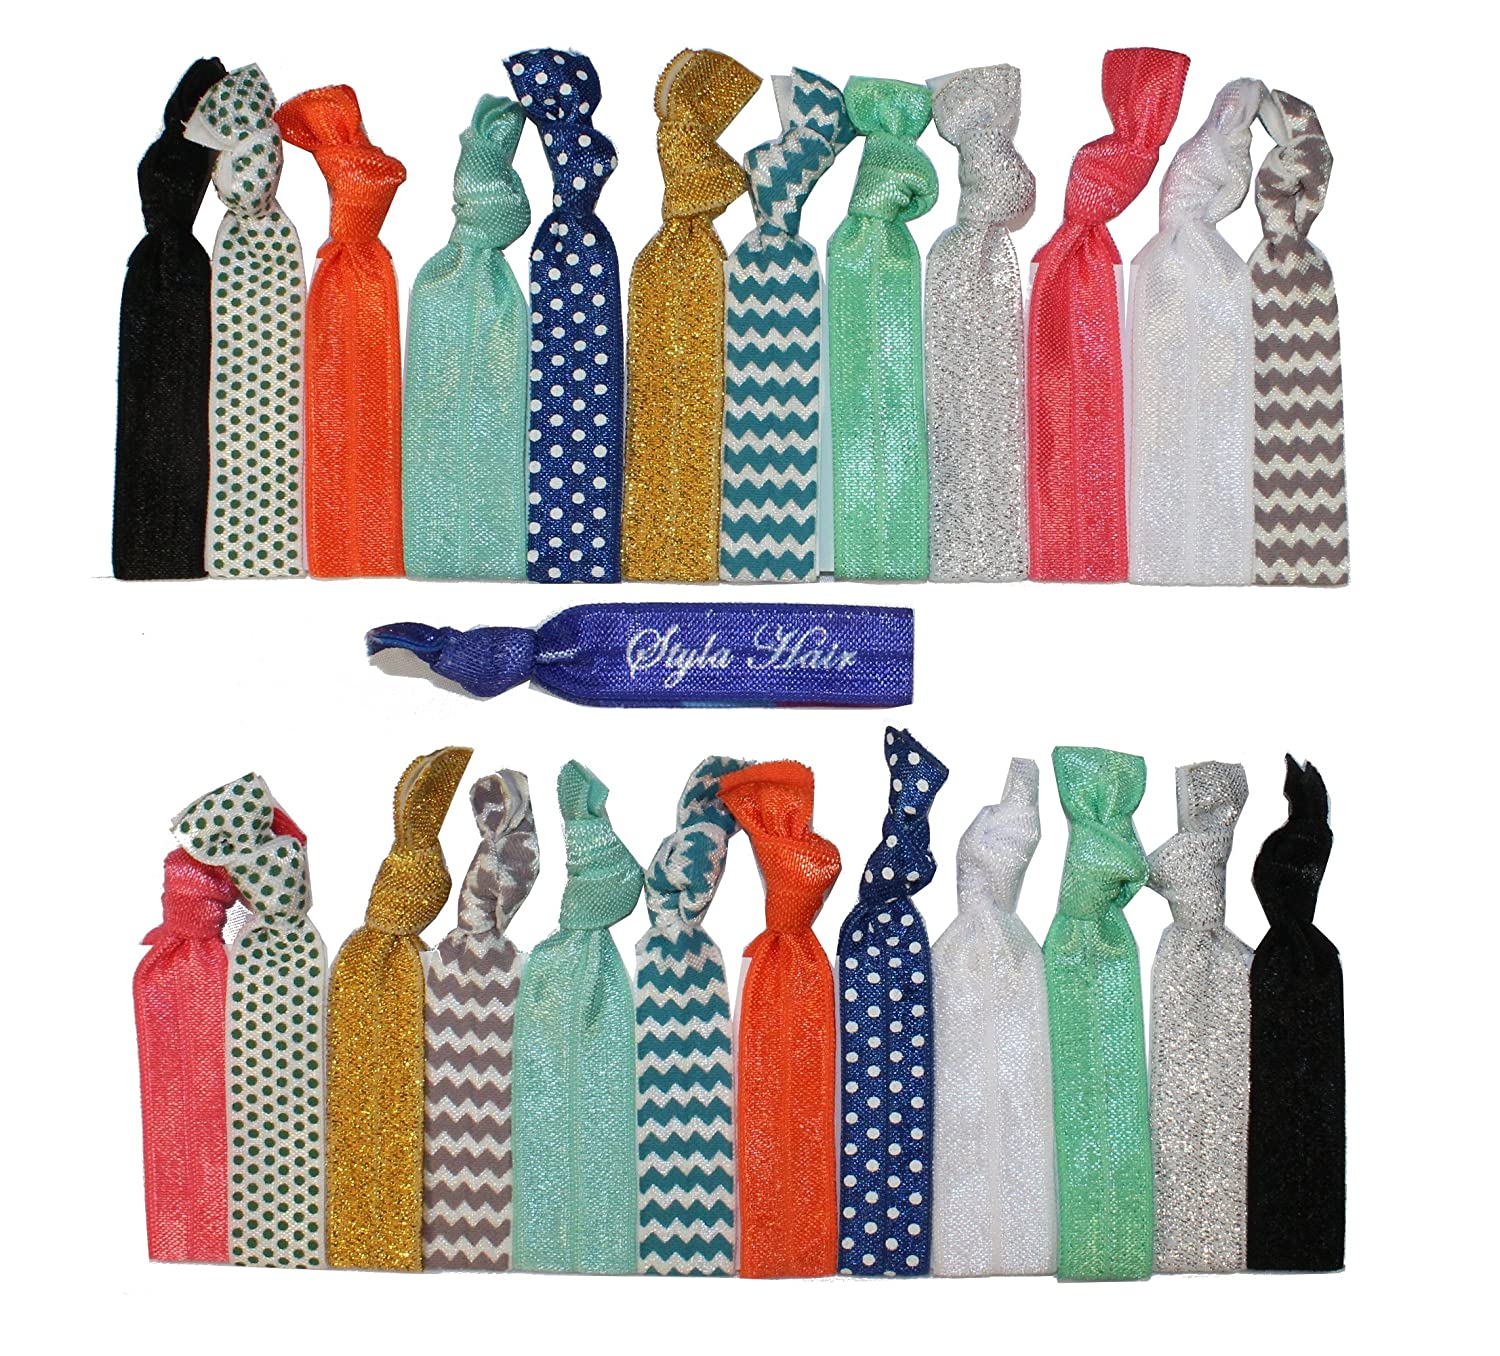 Amazon.com   Pack of 25 Elastic Ribbon Hair Ties - No Crease Ouchless  Ponytail Holders Hair Accessories (Variety Colors)   Beauty 98073bcbafc